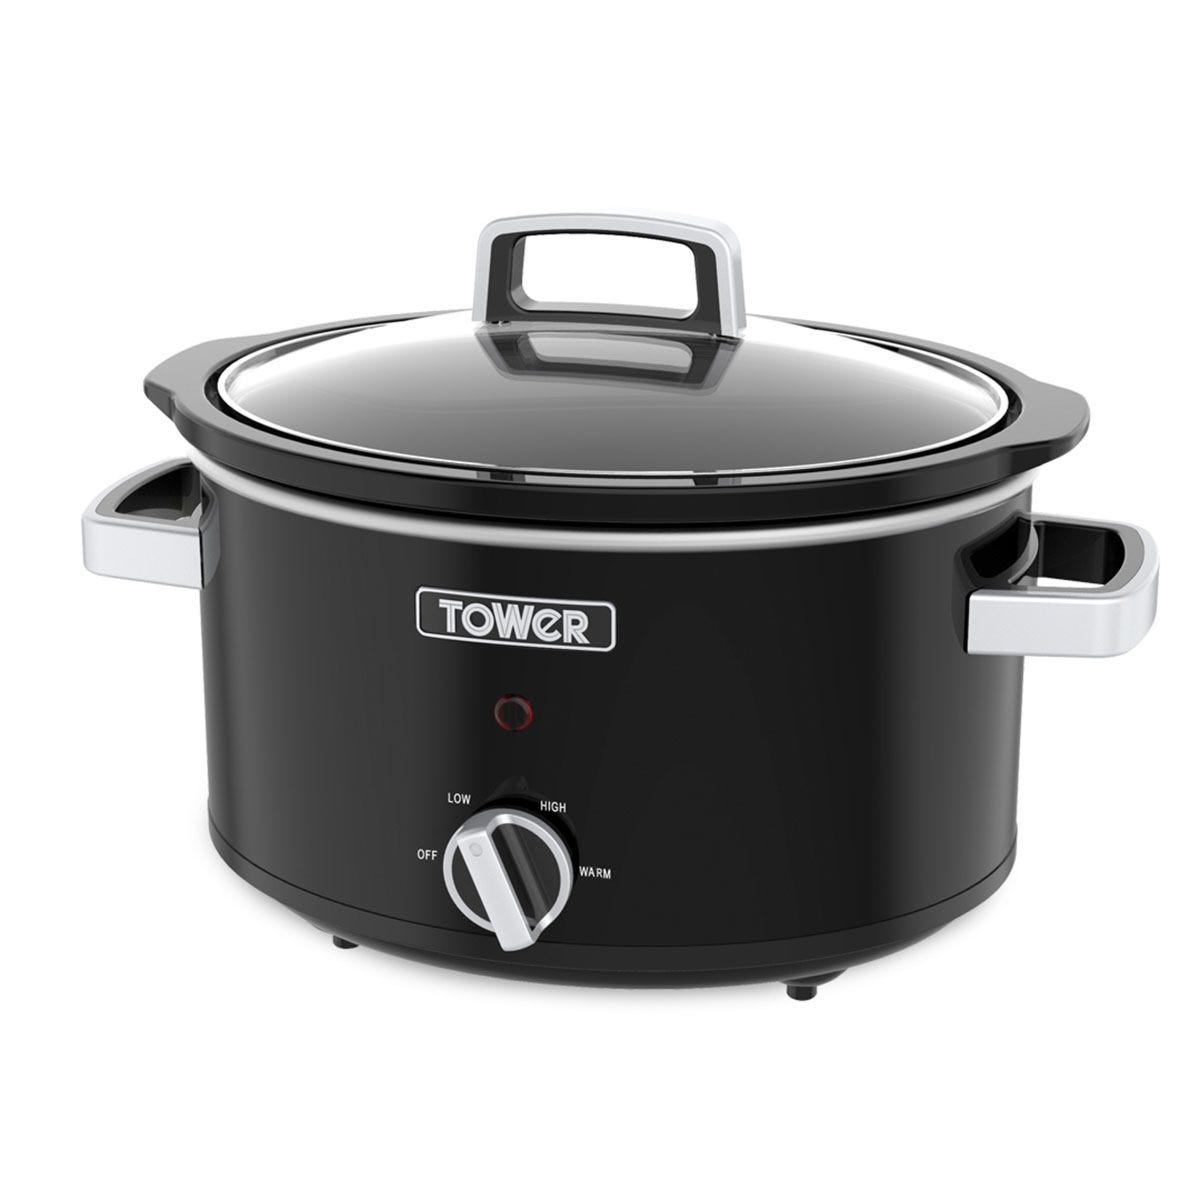 Tower T16019BL 6.5L Stainless Steel Slow Cooker - Black